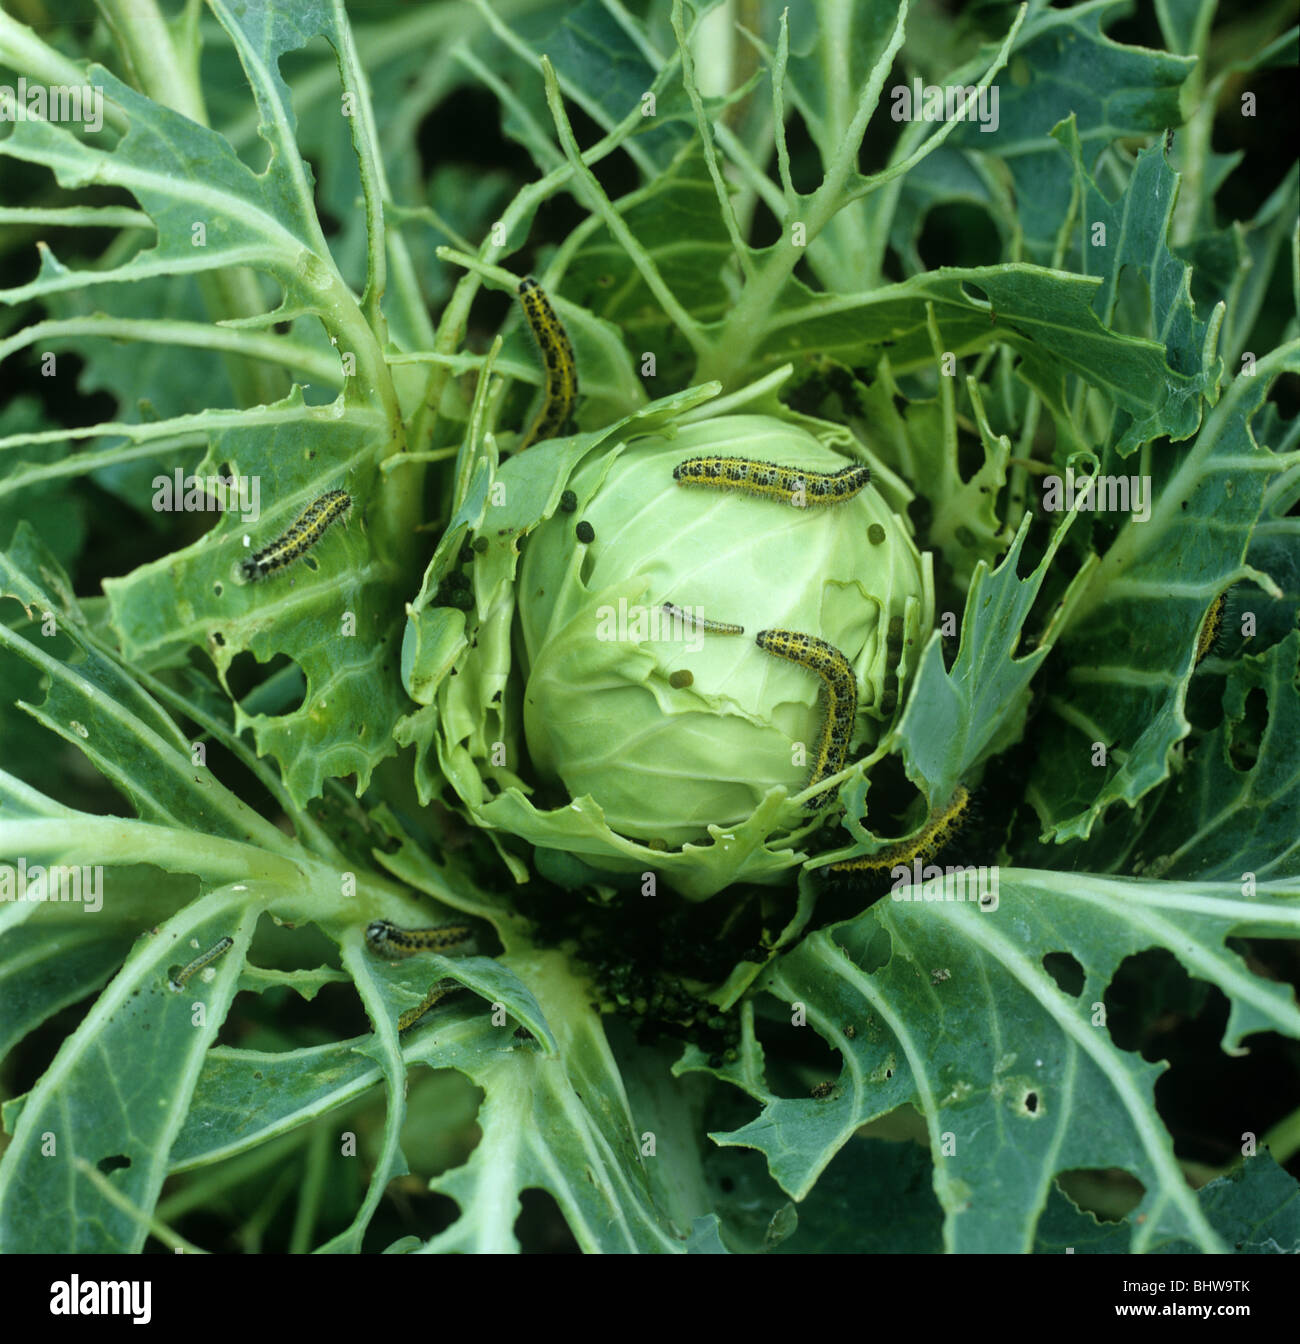 Large white butterfly (Pieris brassicae) caterpillars on decimated cabbage plant - Stock Image